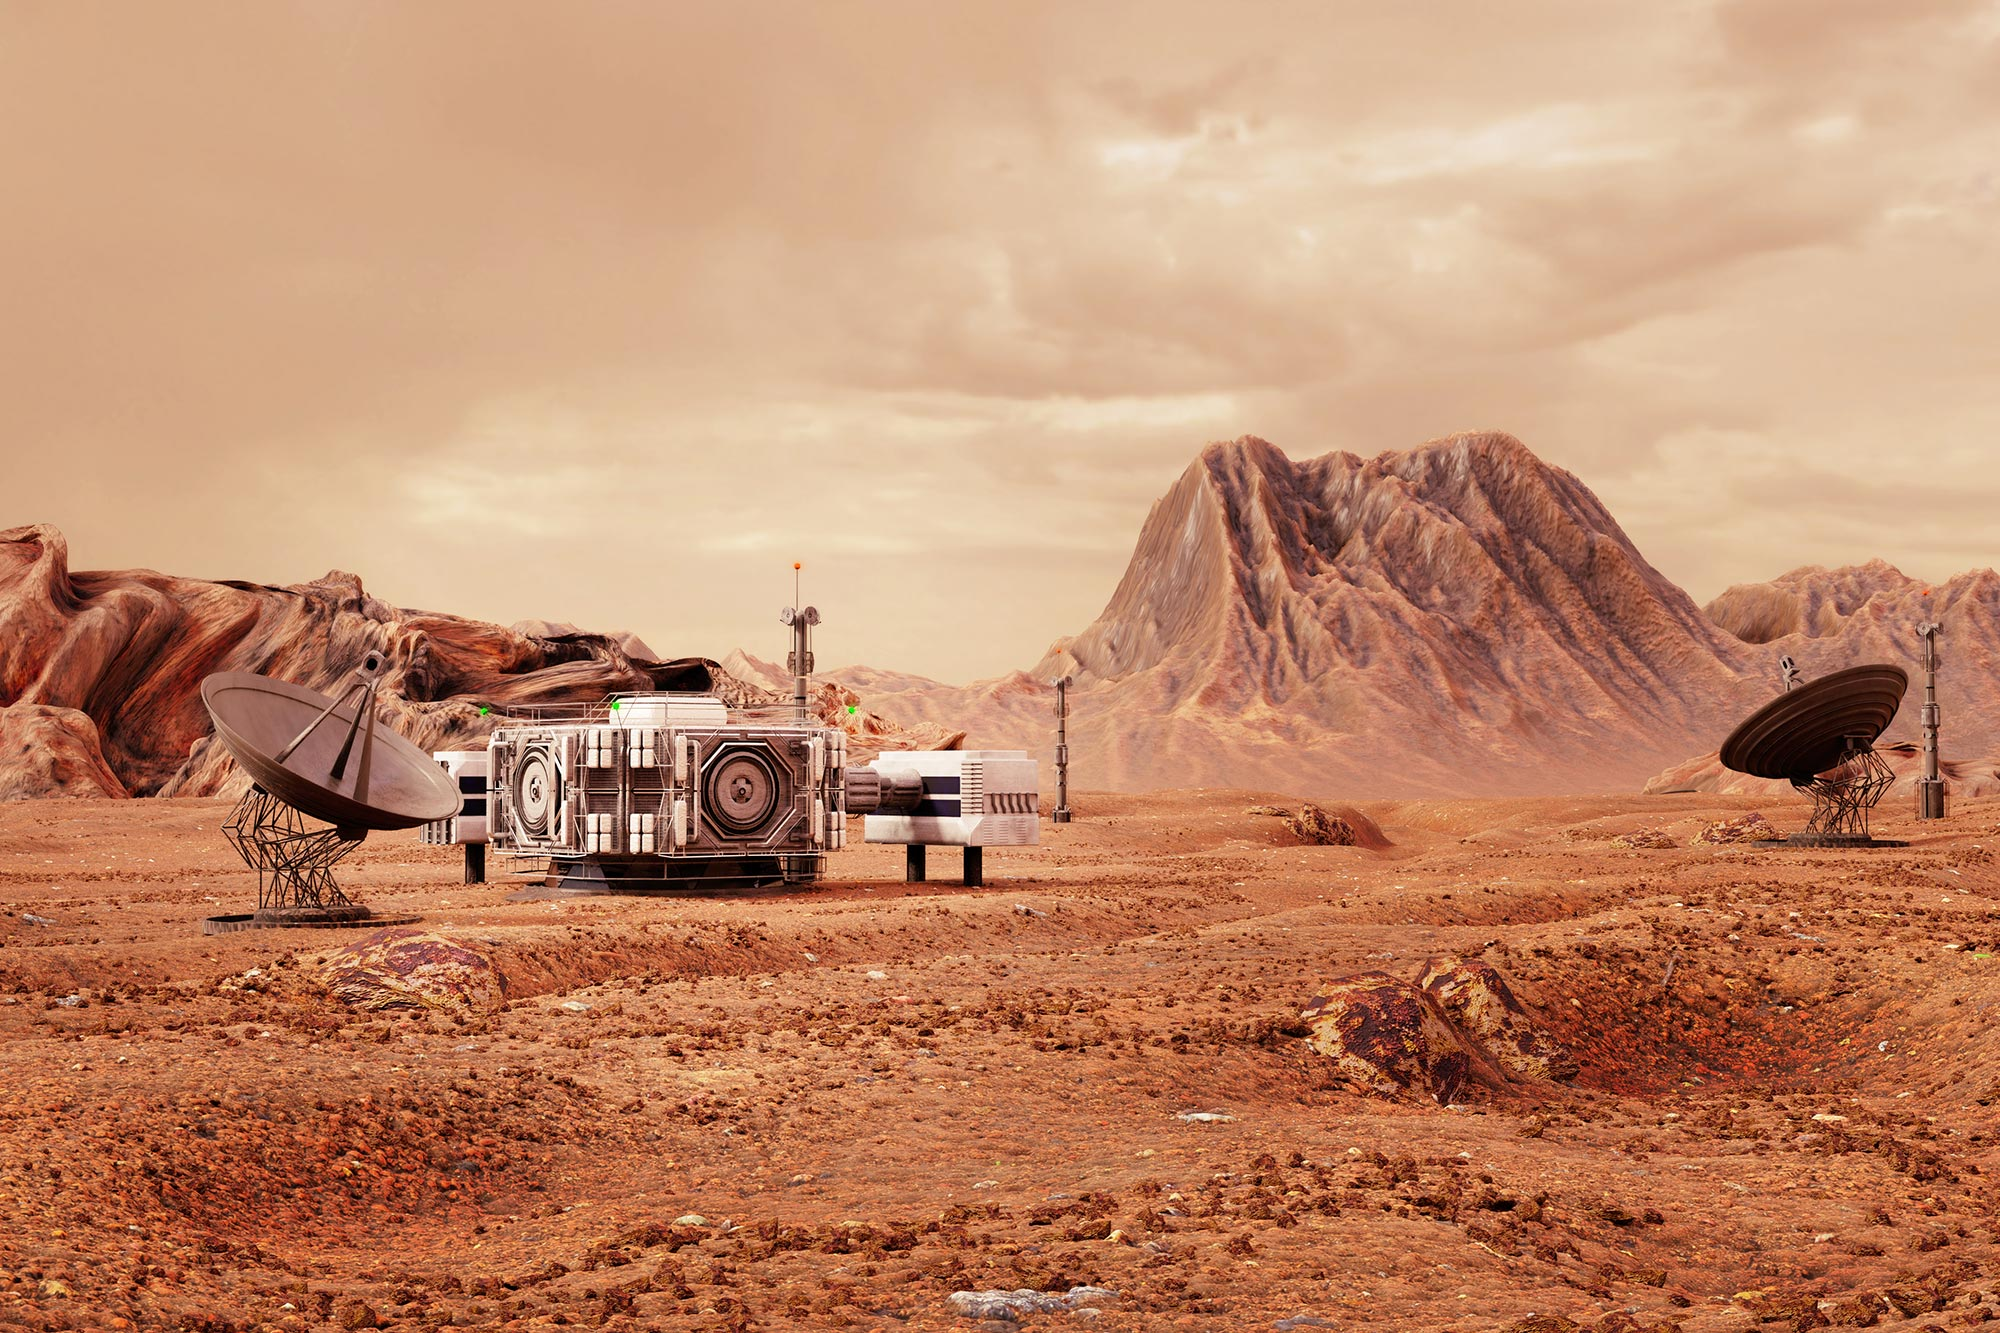 Could We Feed One Million People Living on Mars? A Provocative New ...